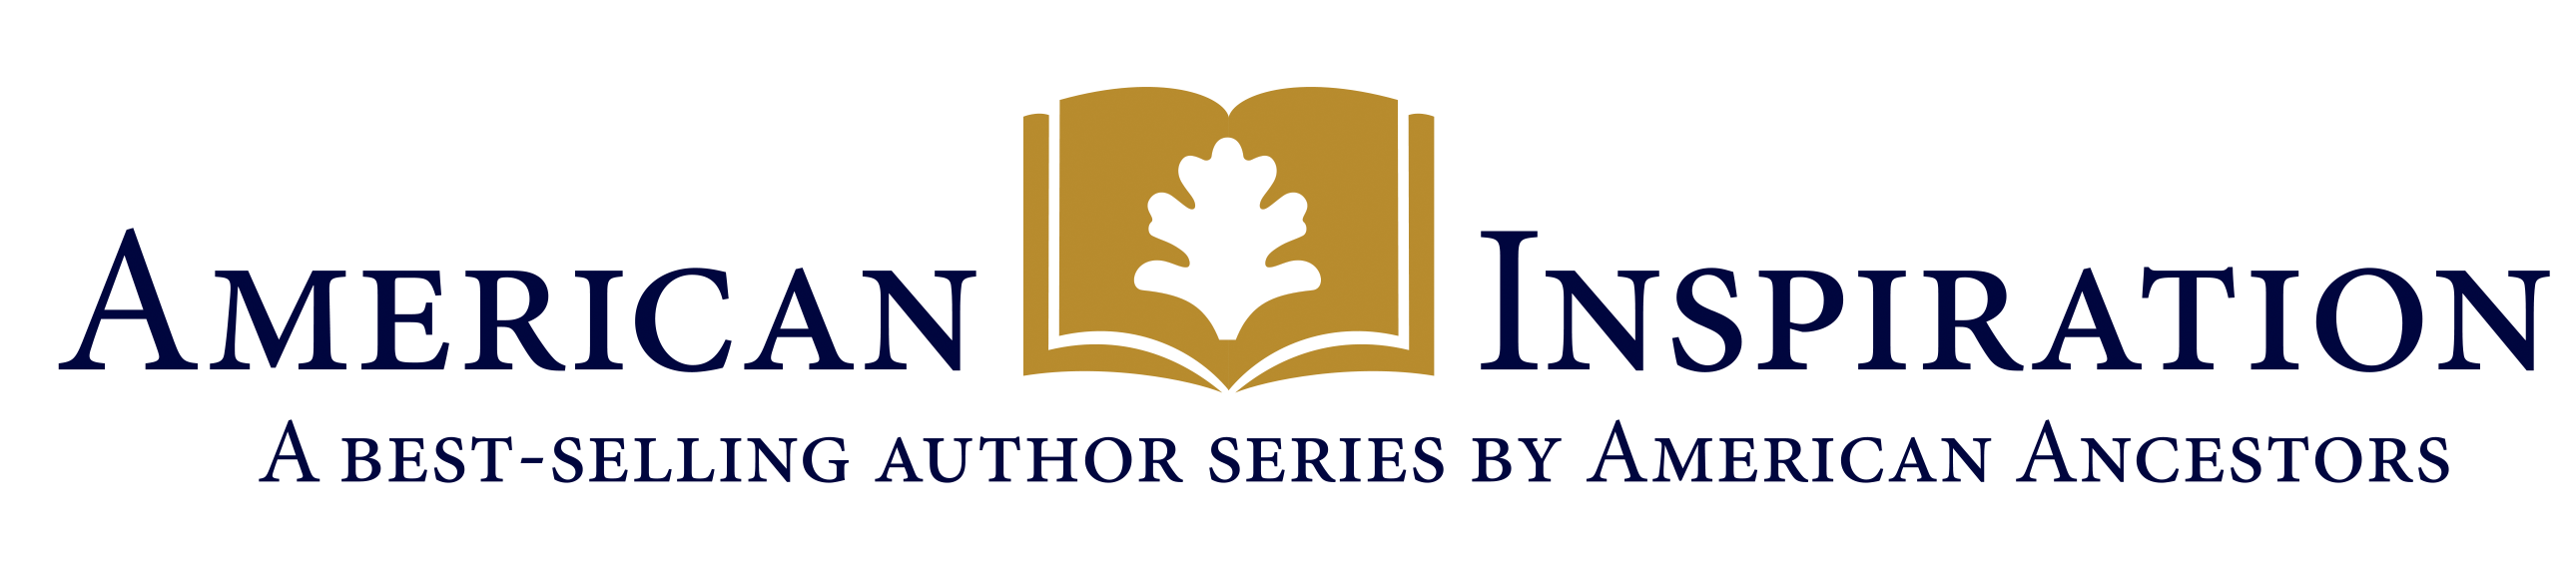 American Inspiration Author Series: A Best-Selling Author Series by American Ancestors